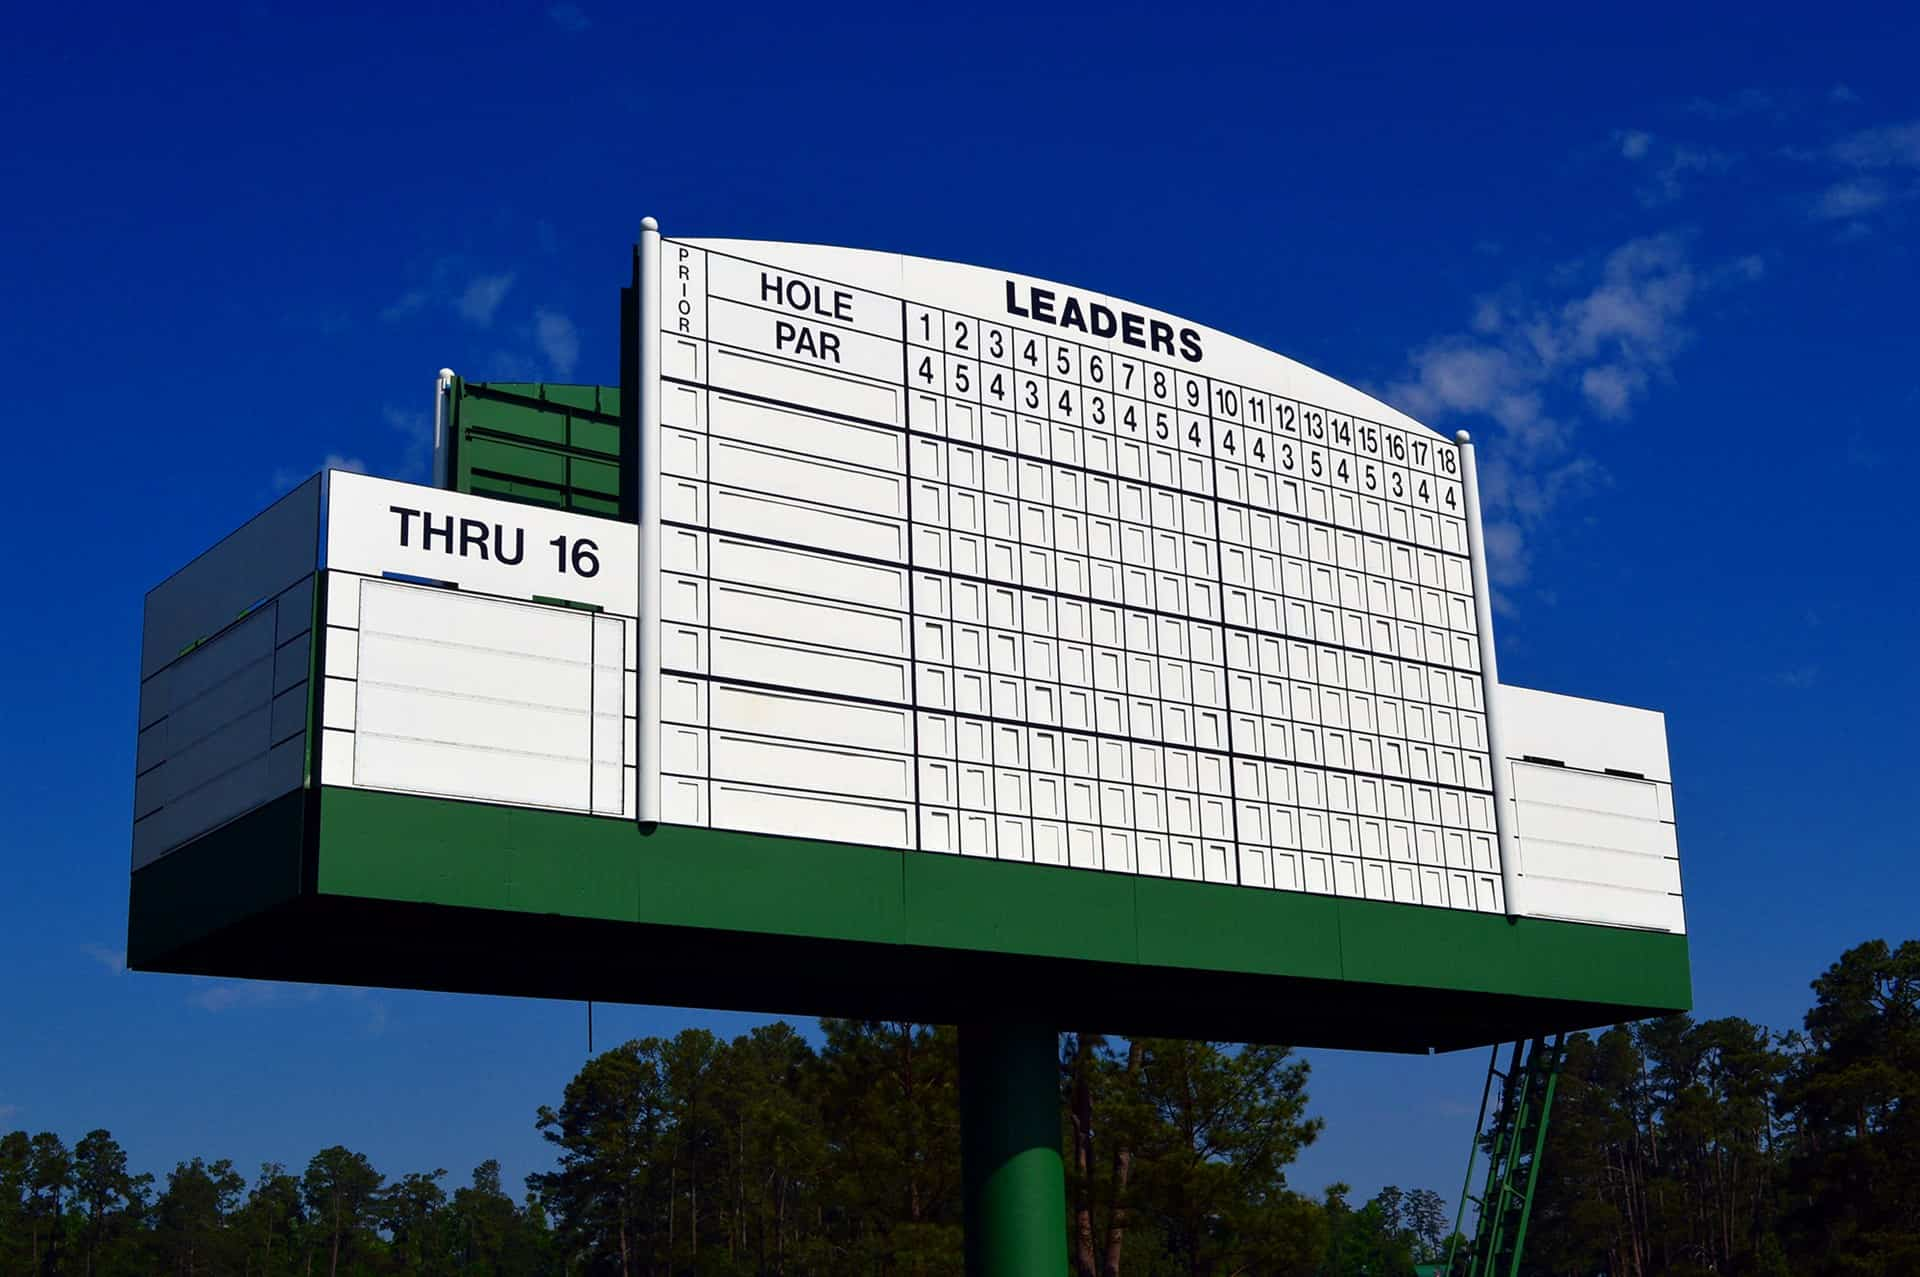 Photograph of the leaderboard at The Masters golf tournament that reflects the positions of the players in the tournament.